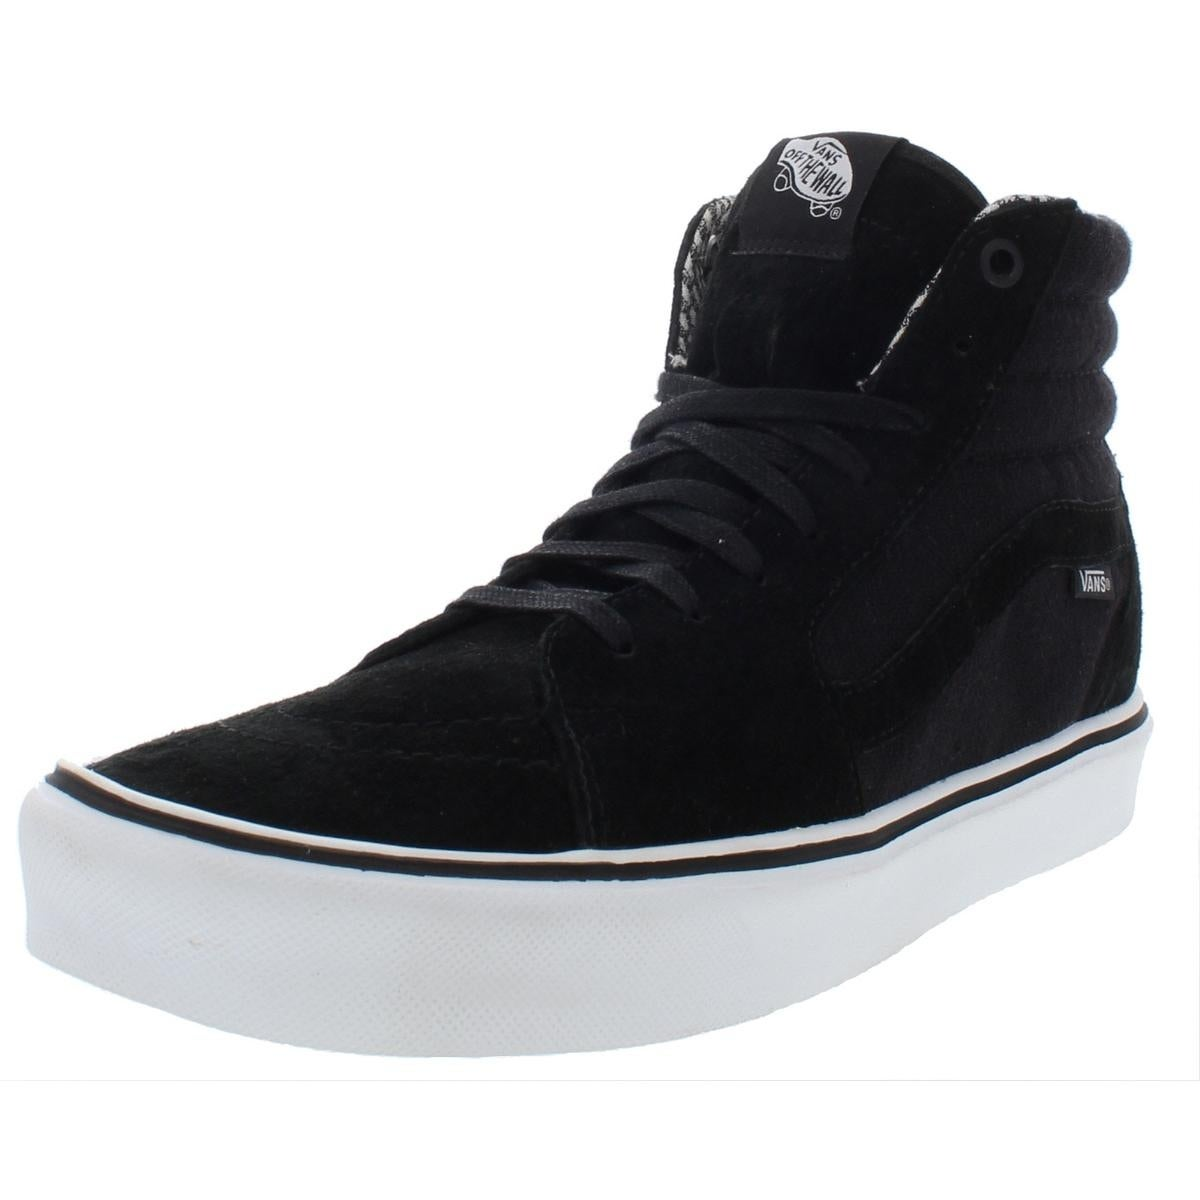 b0a8f662526805 Shop Vans Mens SK8-Hi Lite Skateboarding Shoes Suede Sport - Free Shipping  Today - Overstock - 27945794